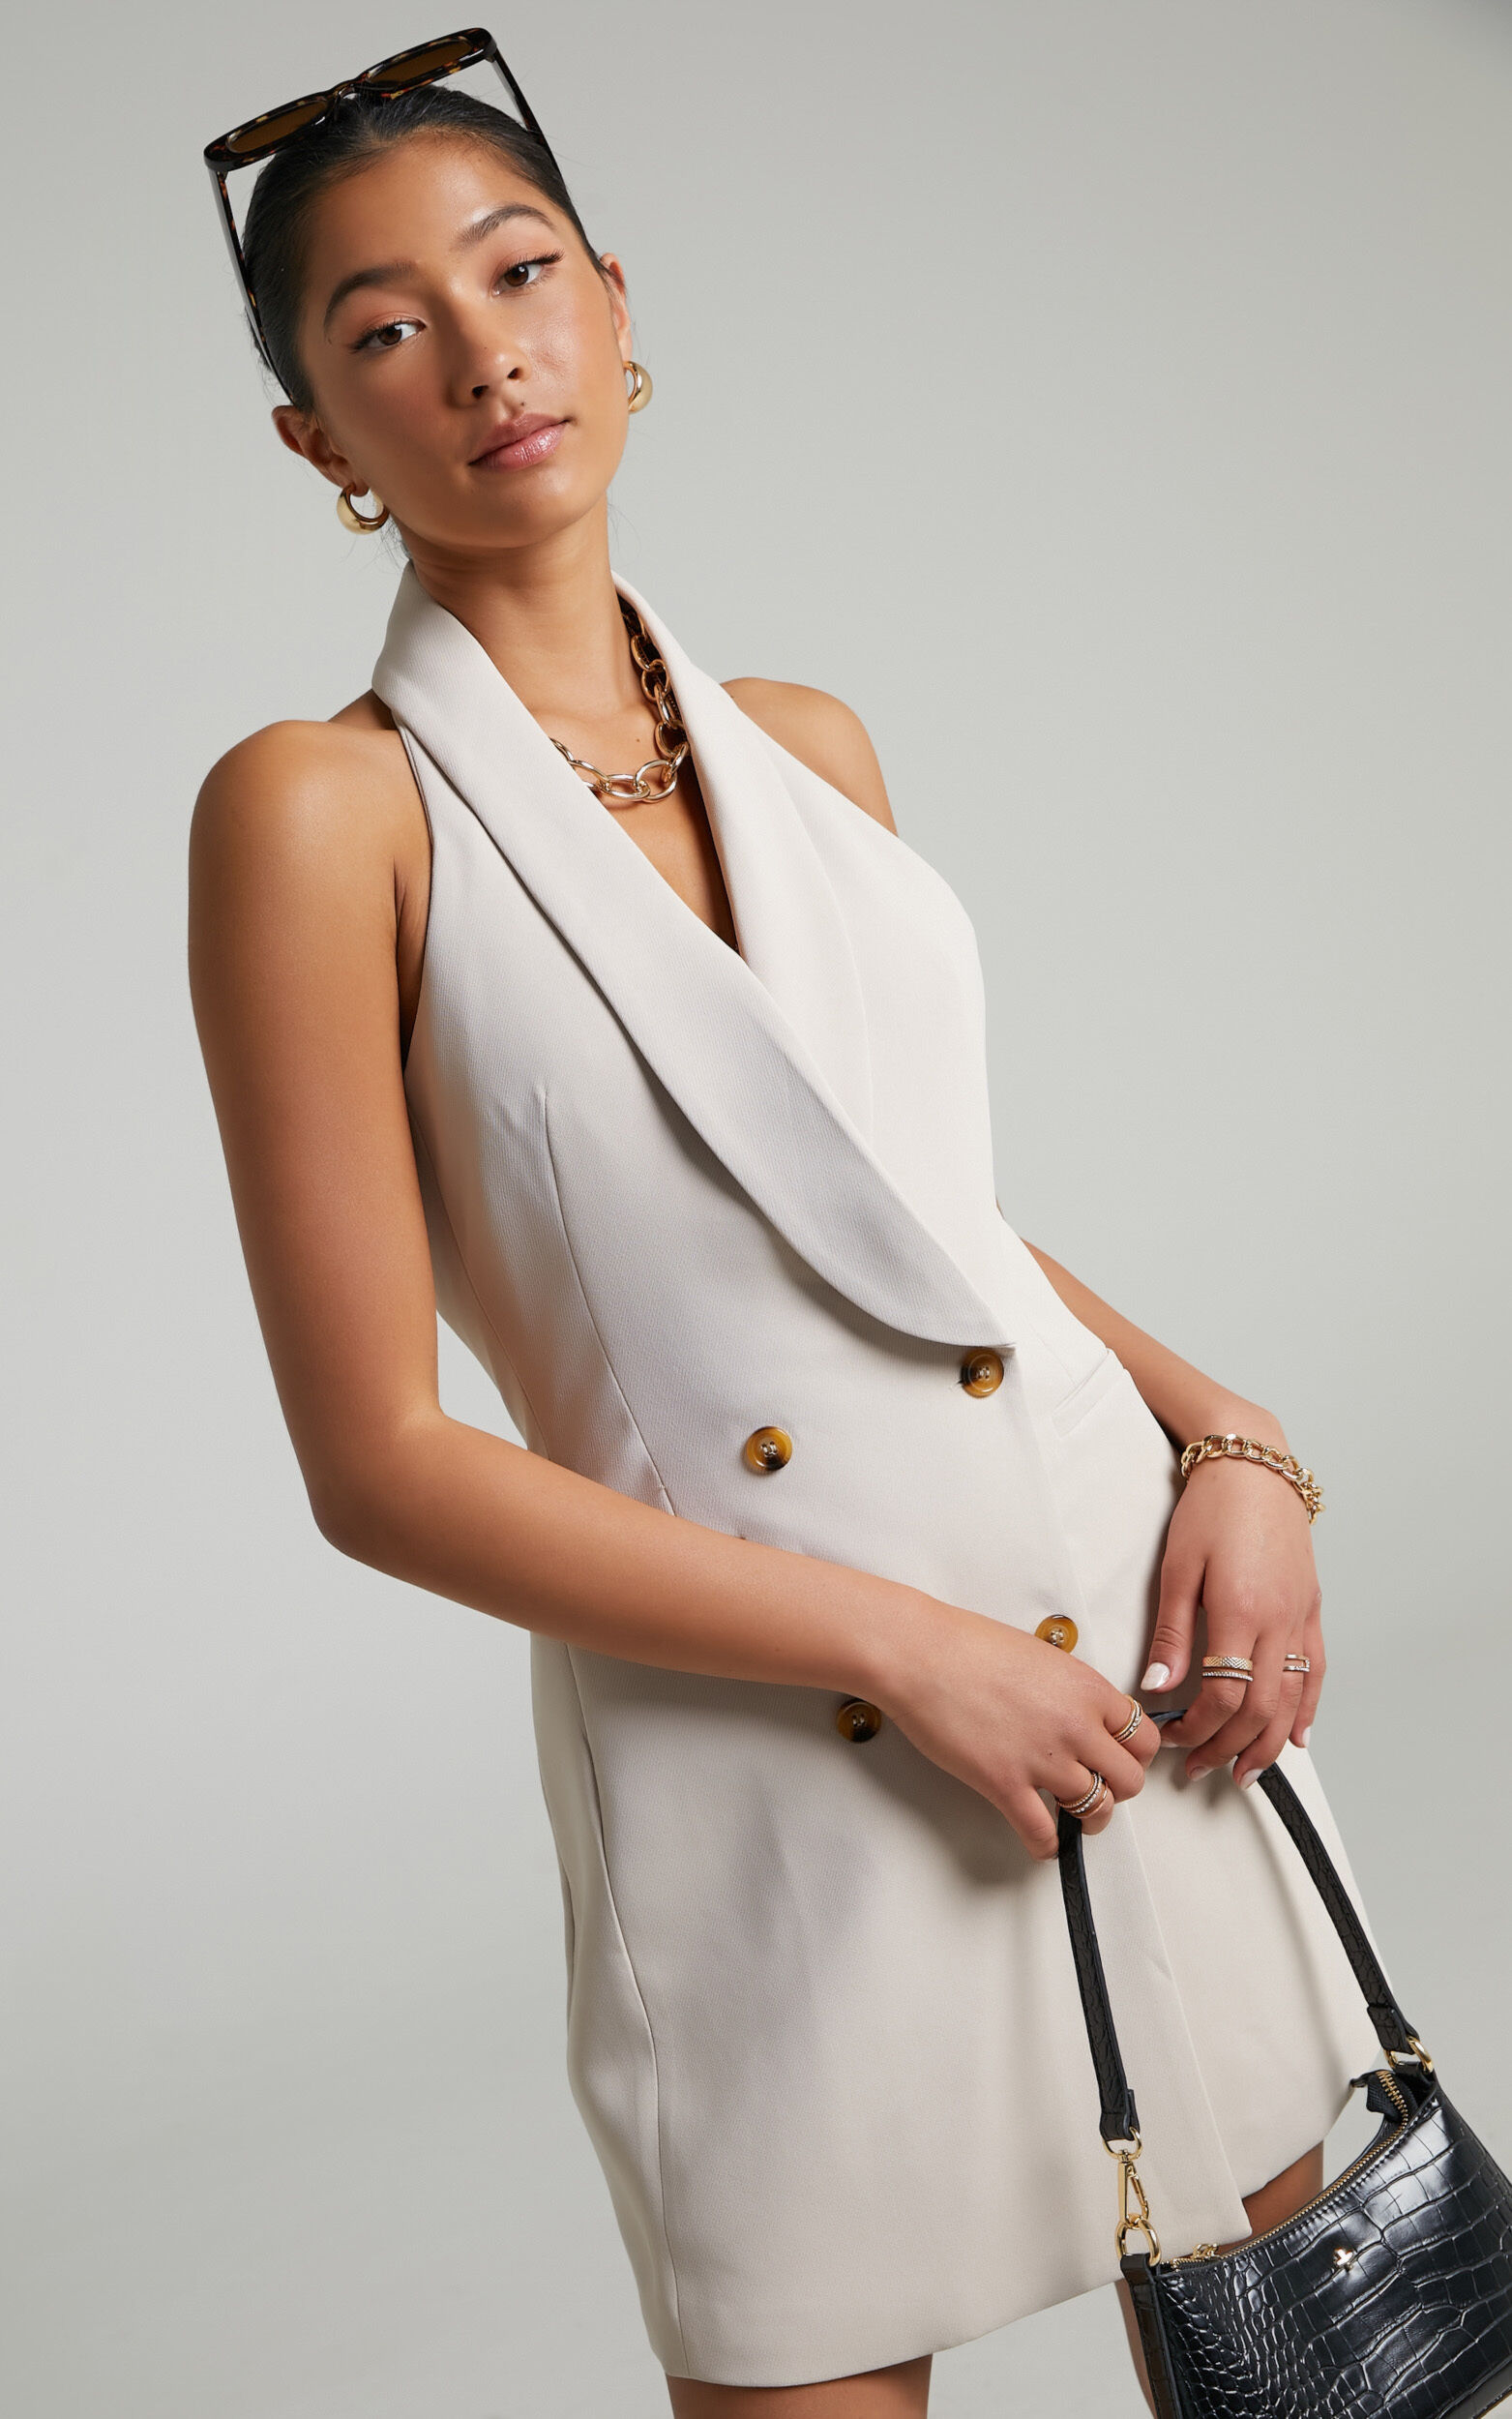 Kenny Waistcoat Mini Dress with Open Back in Light Camel - 04, BRN1, super-hi-res image number null